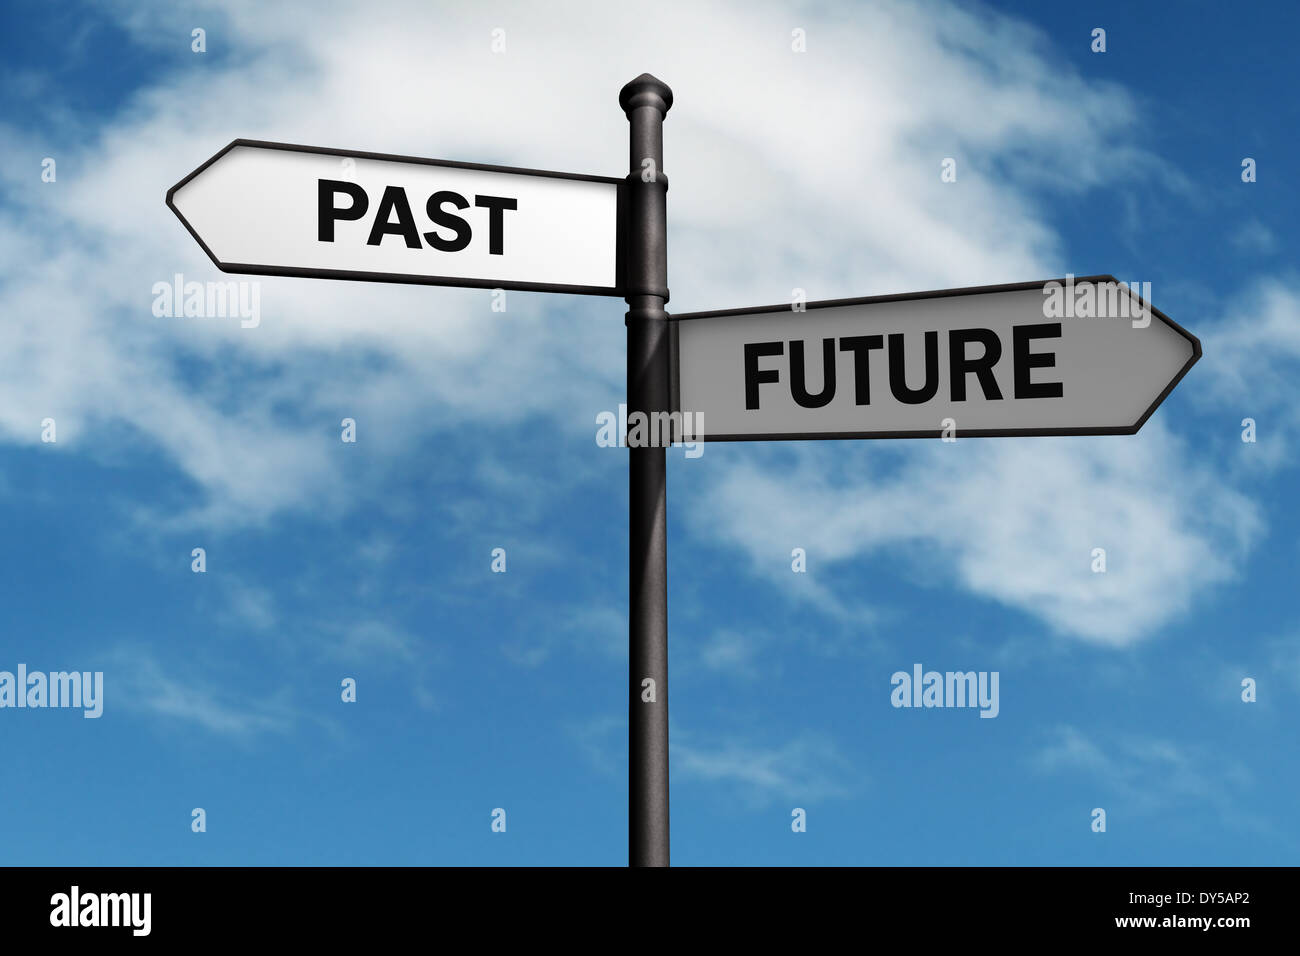 Signpost with past and future direction choices - Stock Image